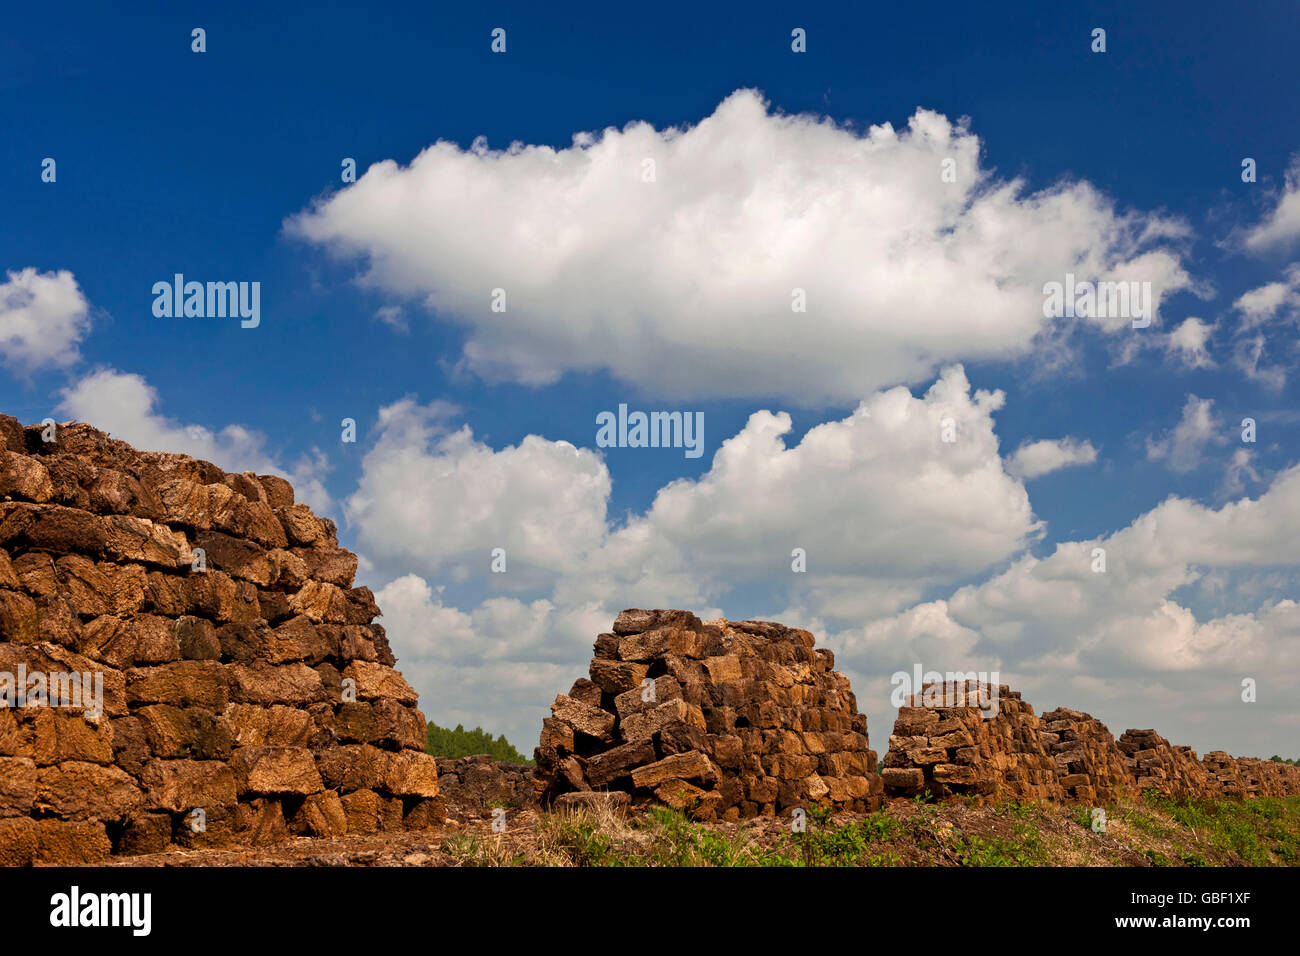 Sods of peat, Goldenstedter Moor, Lower Saxony, Germany - Stock Image